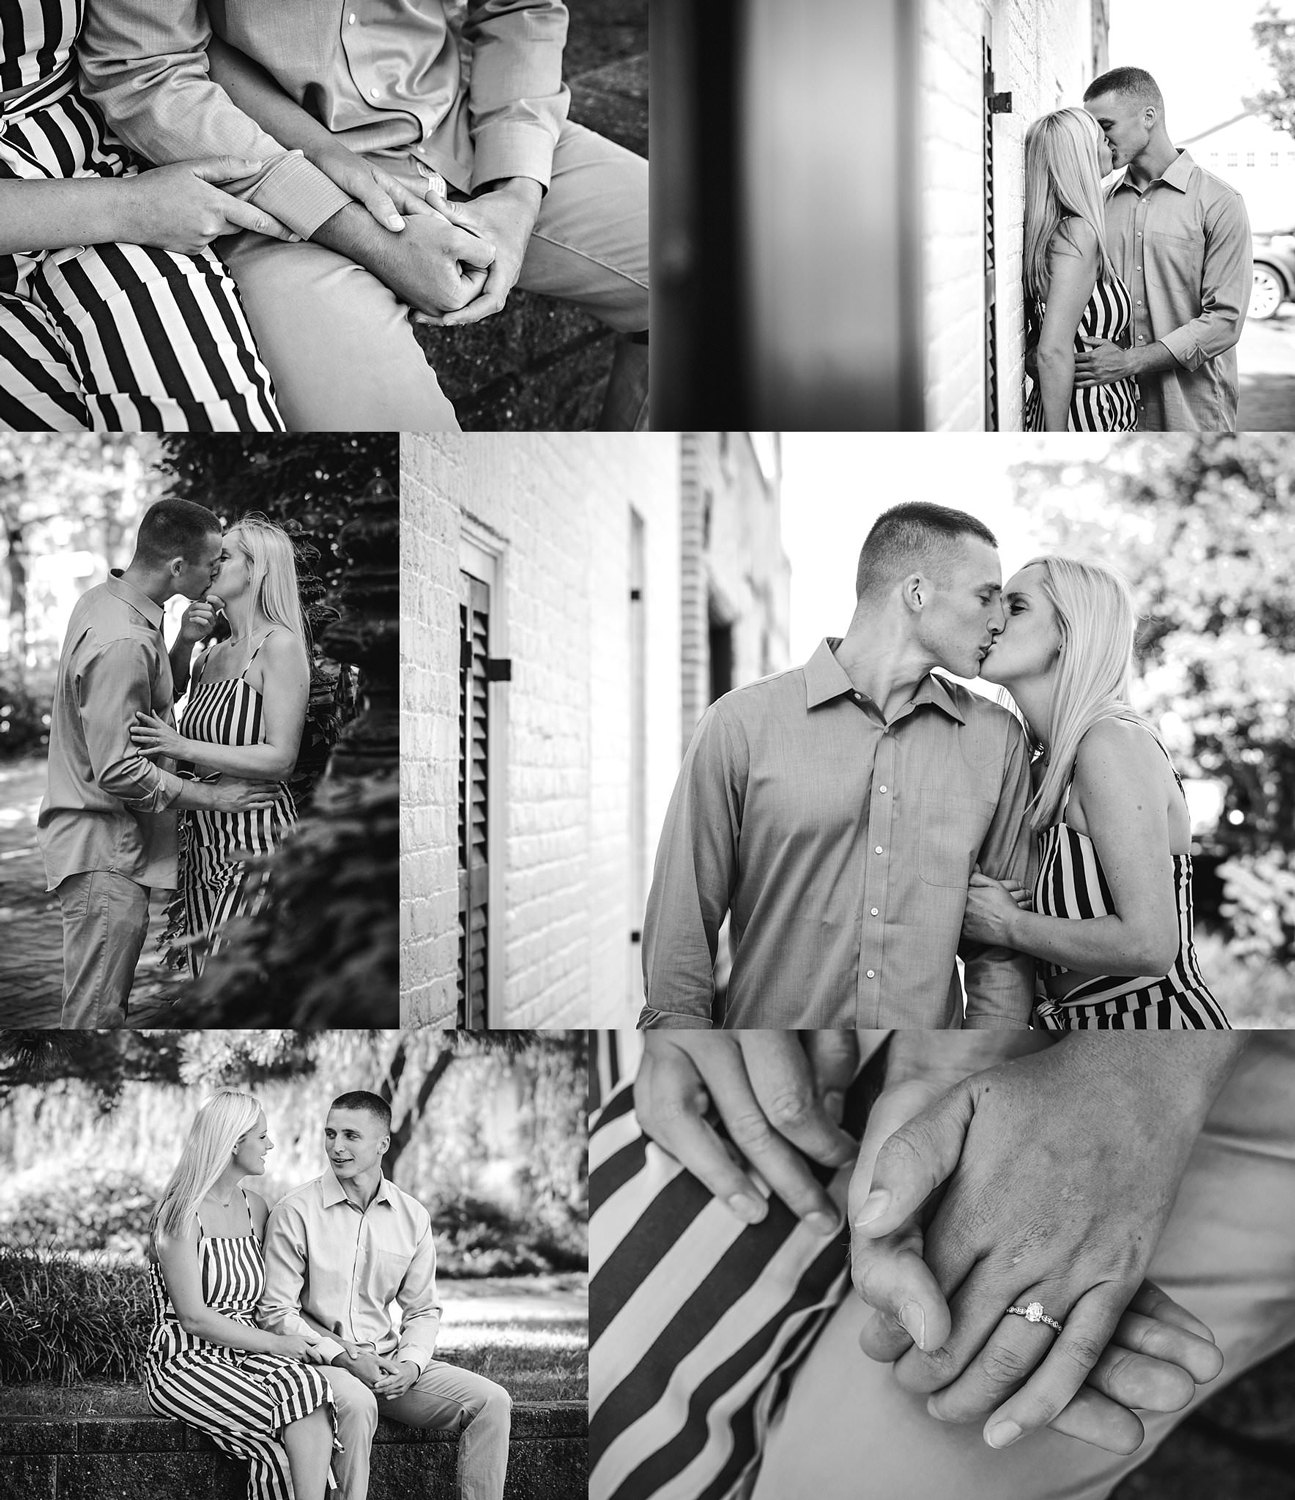 norfolk-engagement-photos-black-and-white-downtown-melissa-bliss-photography.jpg